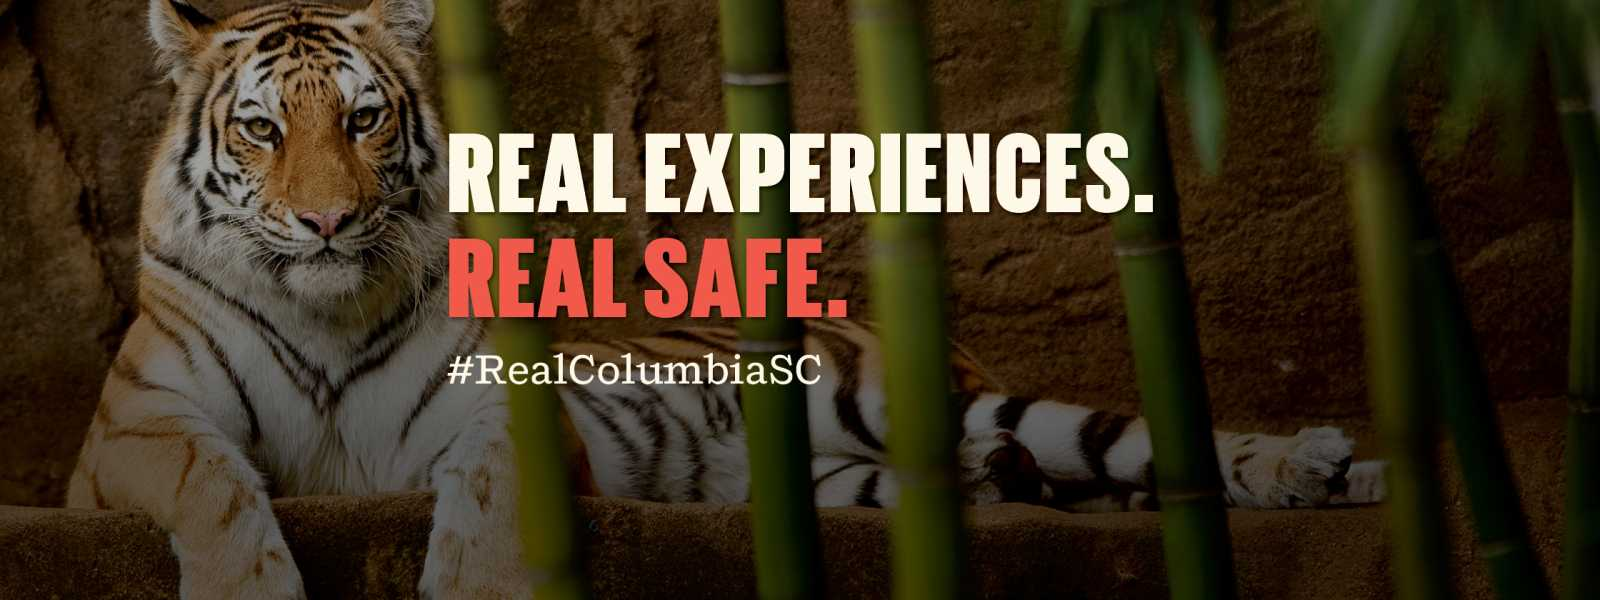 Real Experiences. Real Safe.